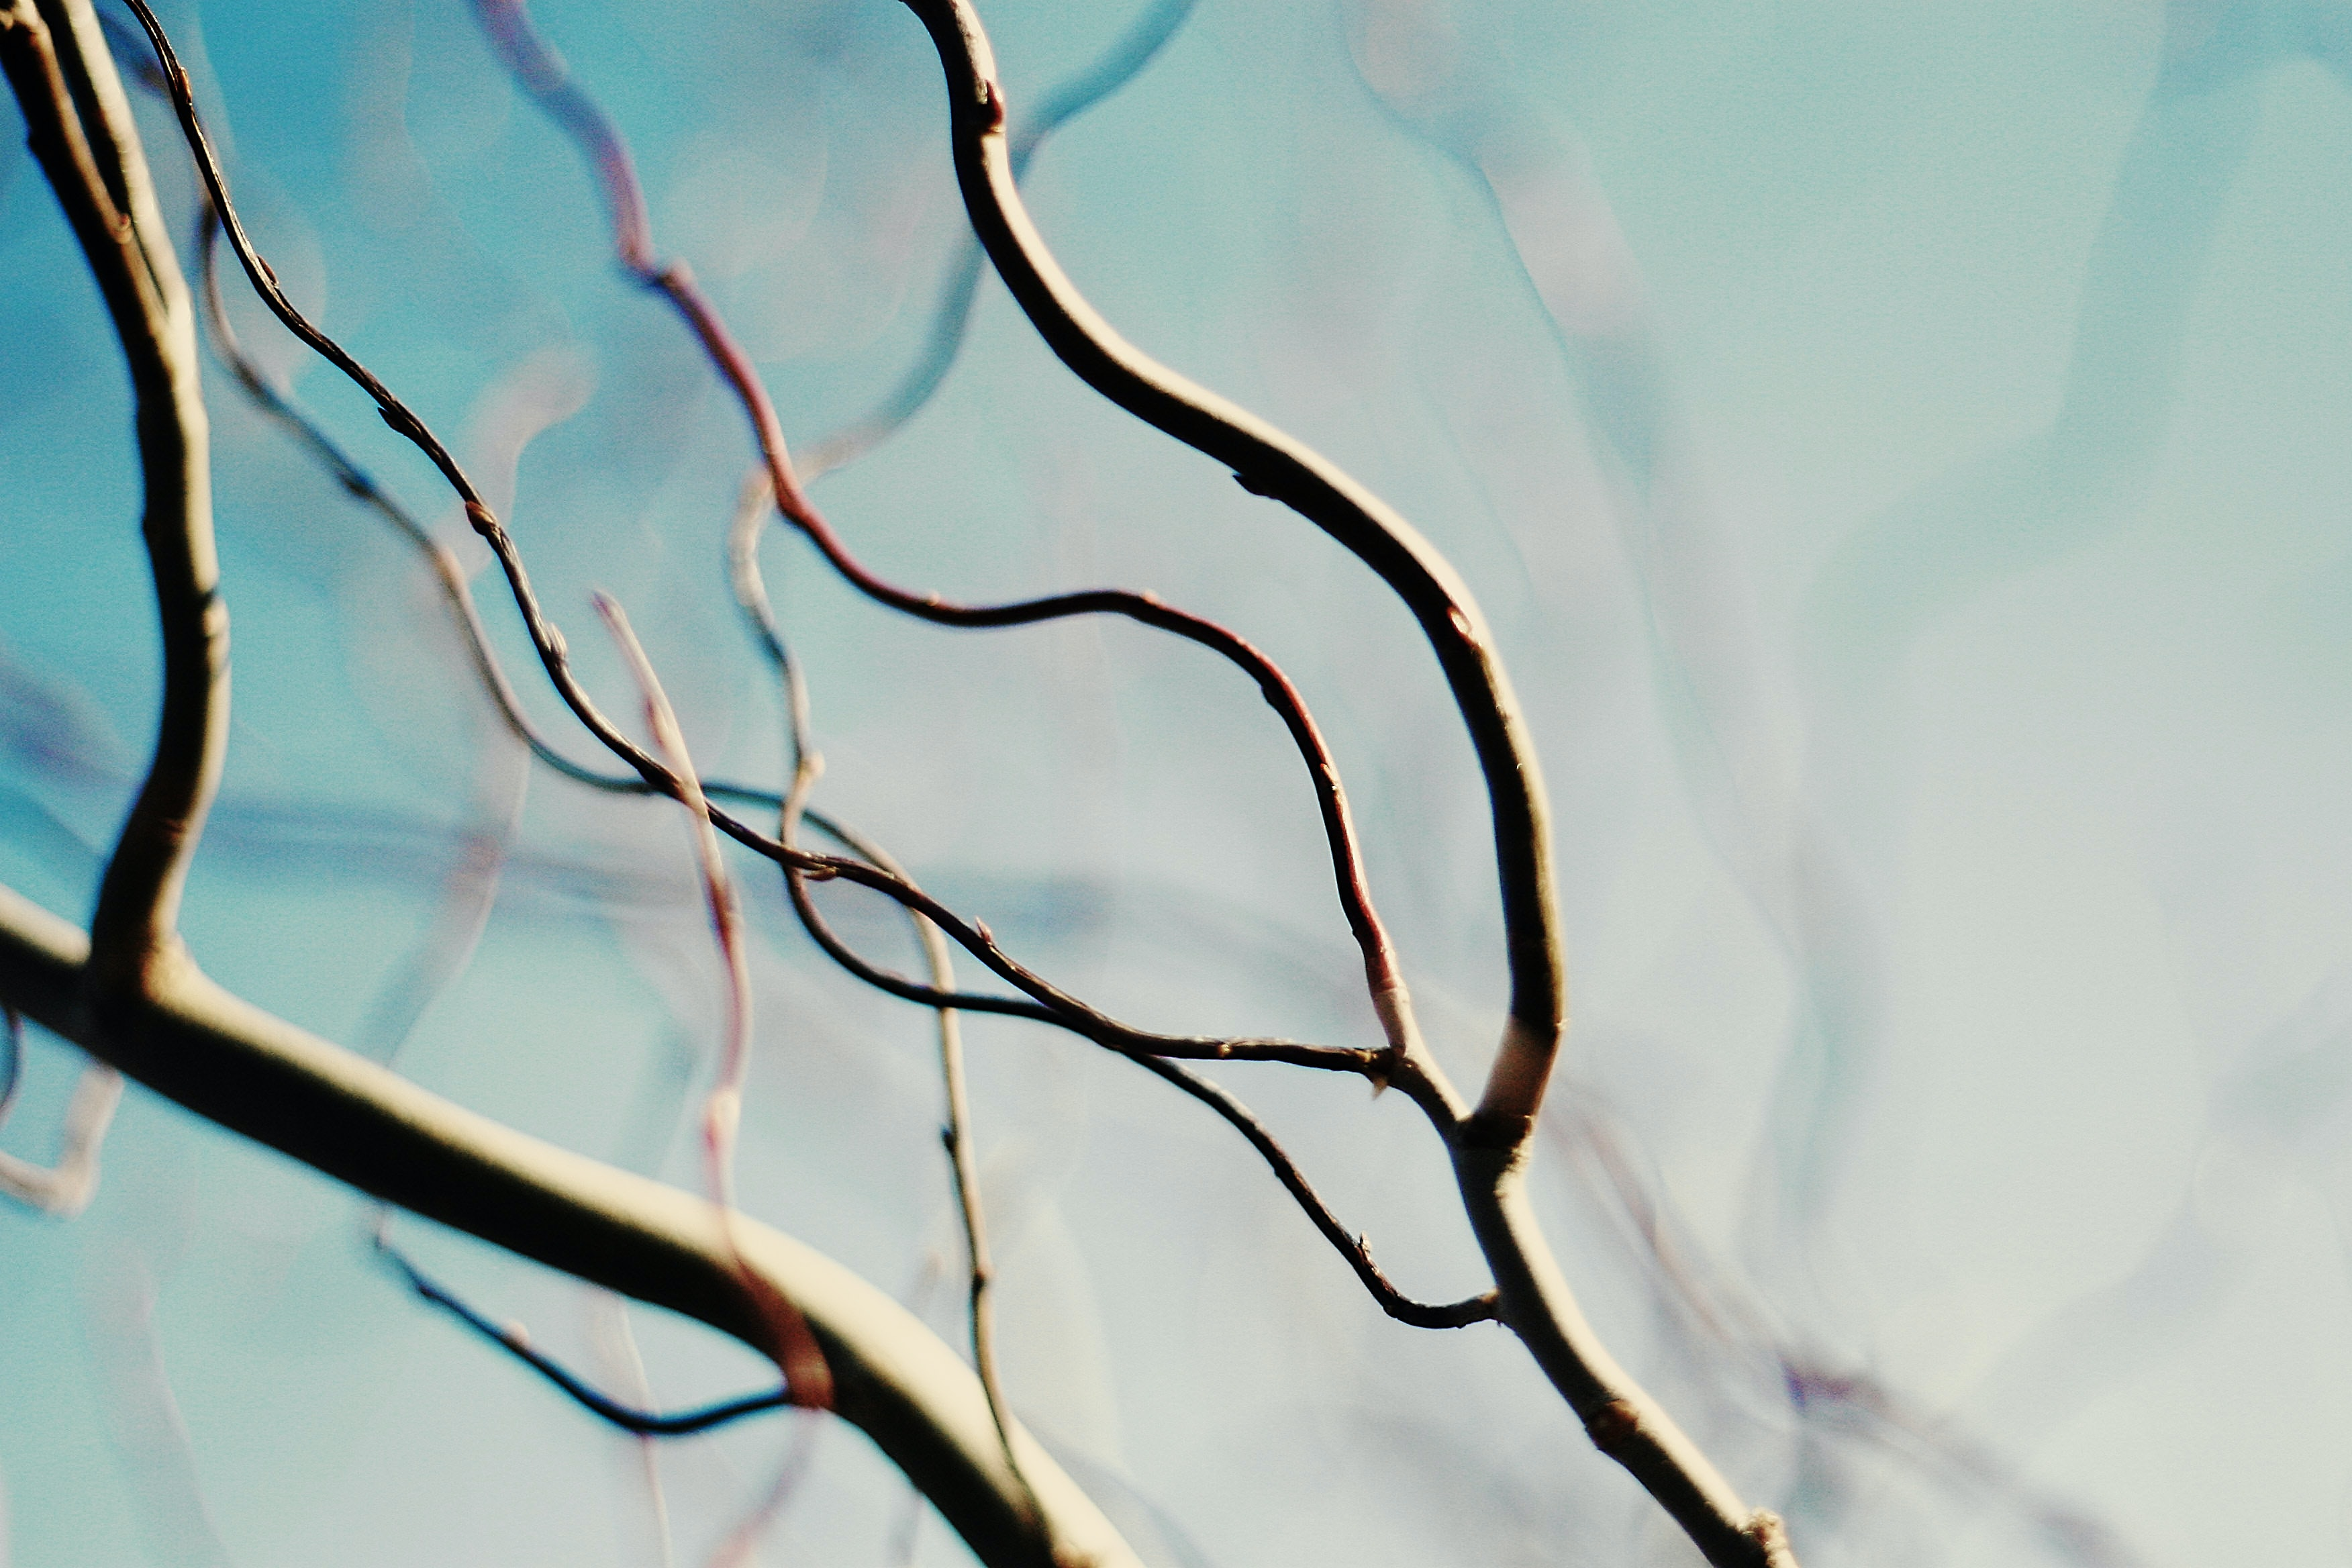 close up photo of tree branch